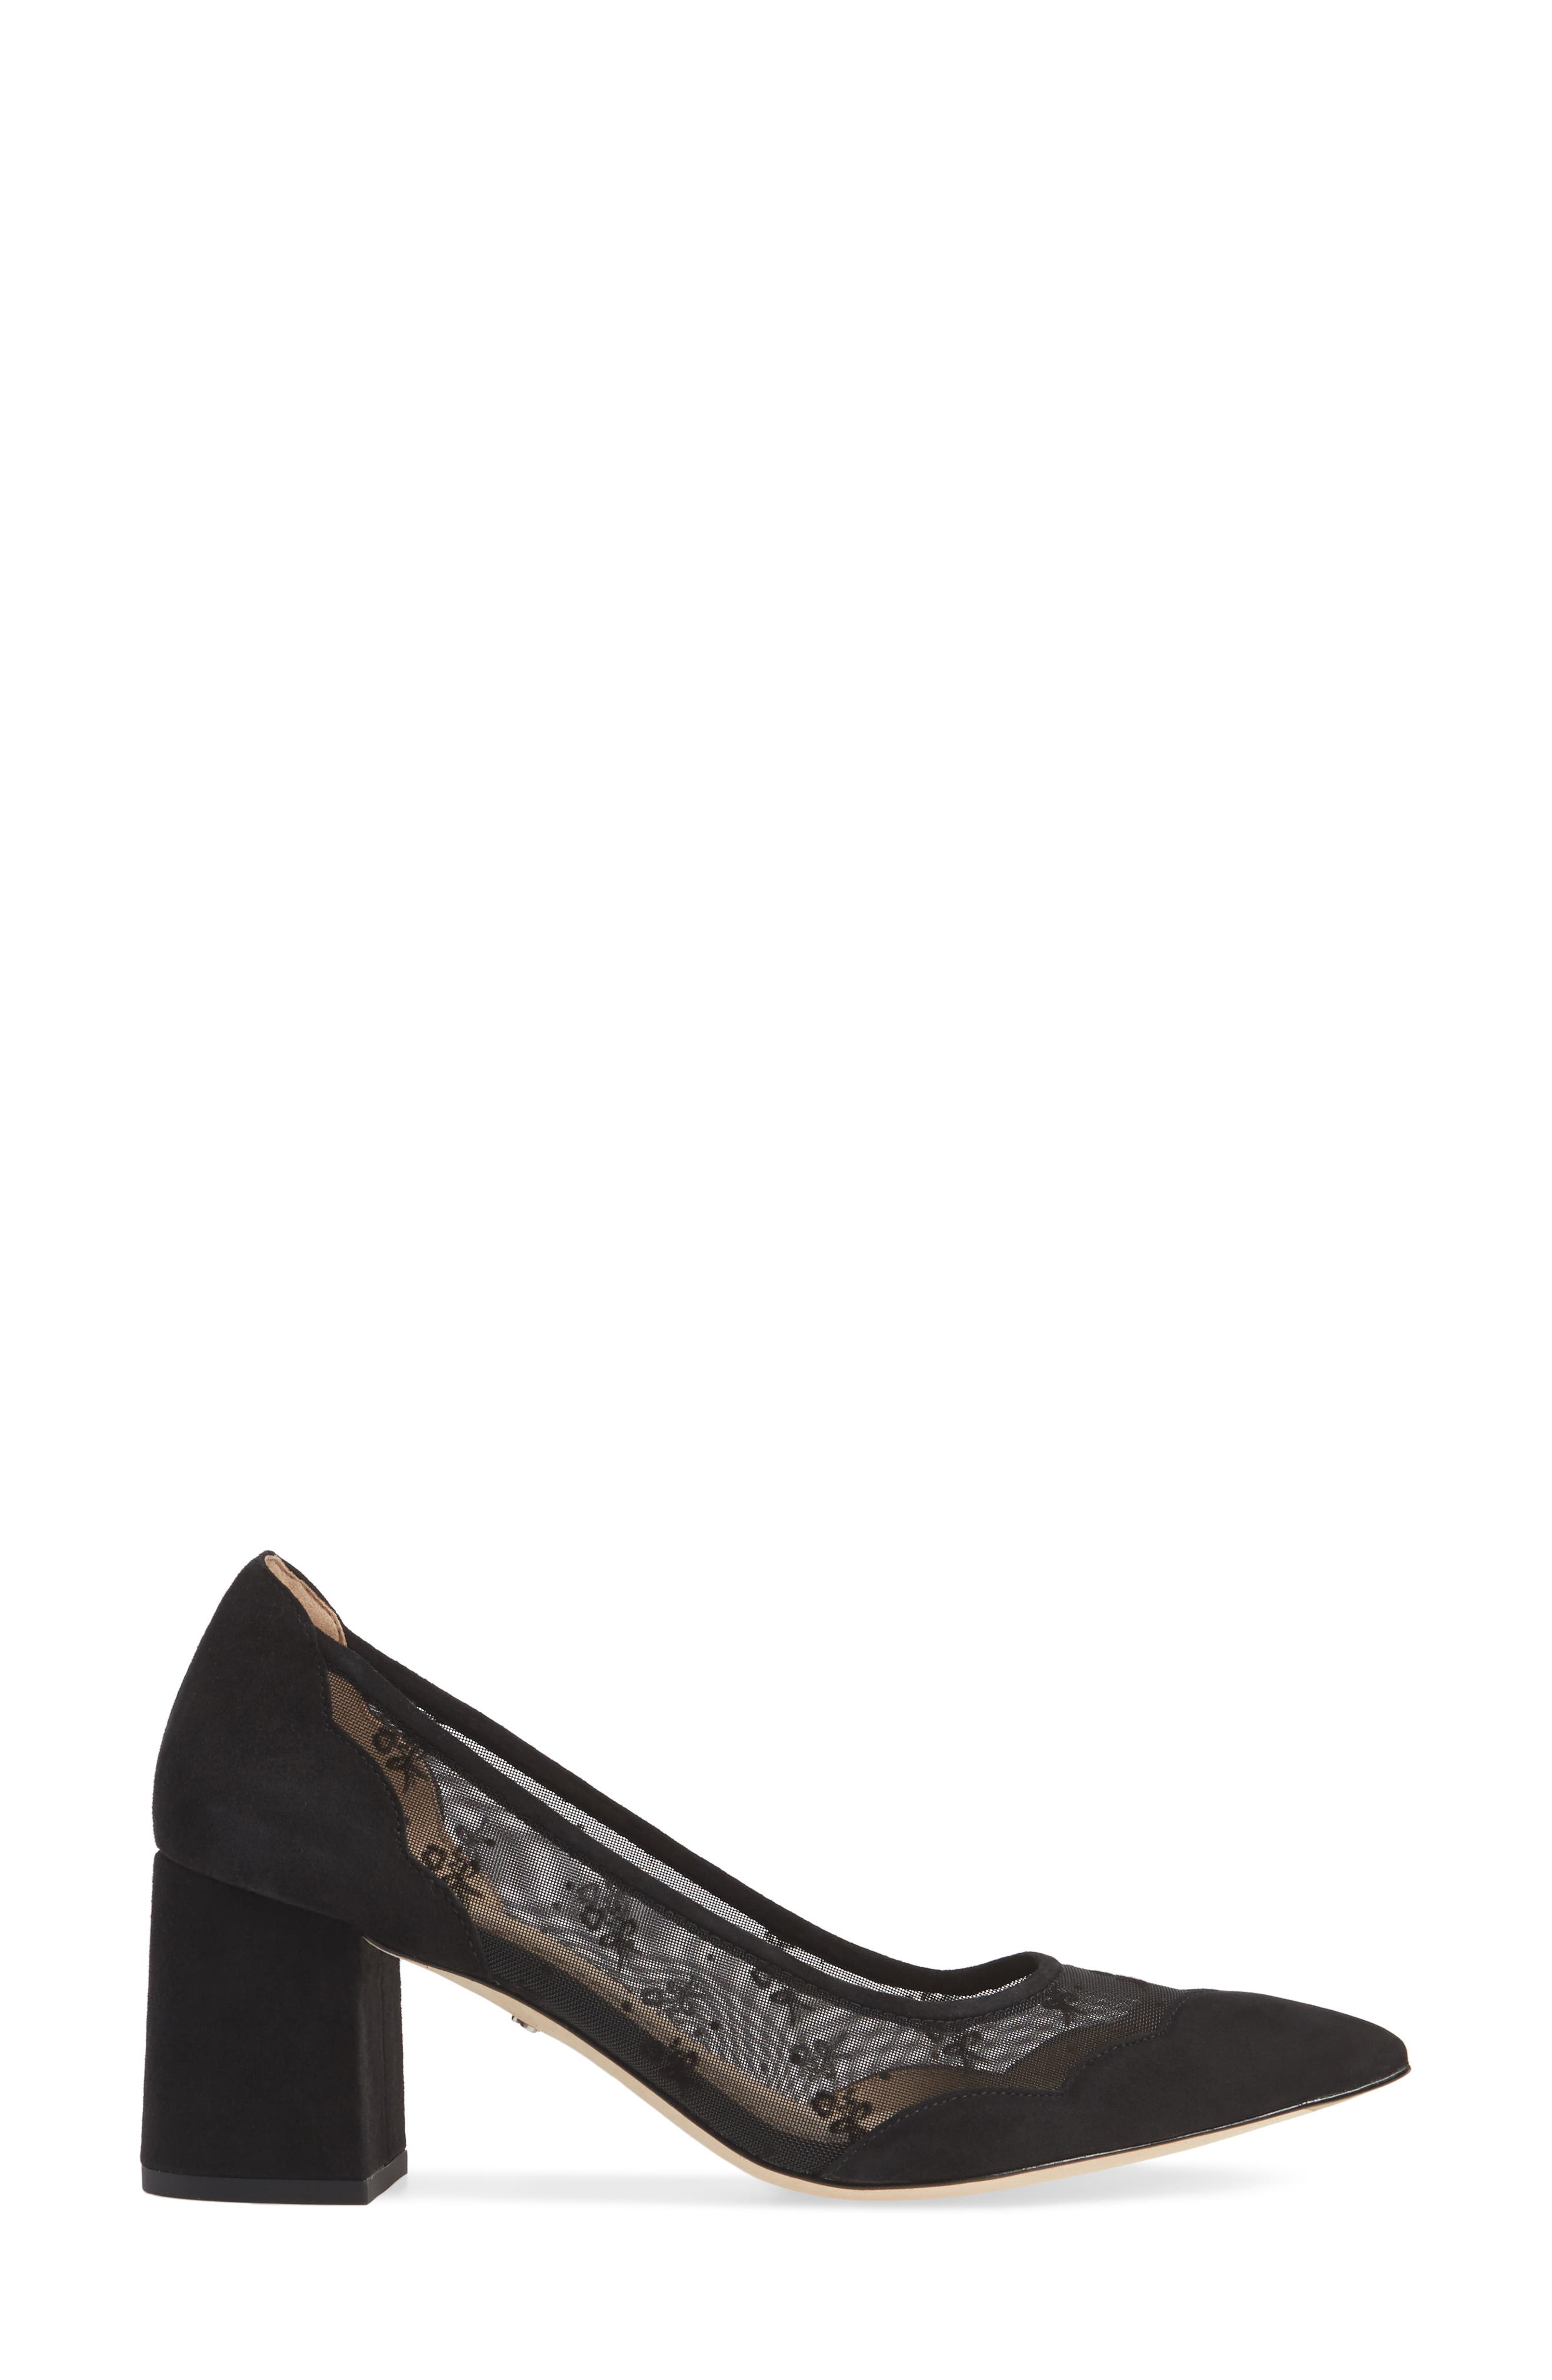 COACH, Whitley Scallop Pointy Toe Pump, Alternate thumbnail 3, color, BLACK SUEDE